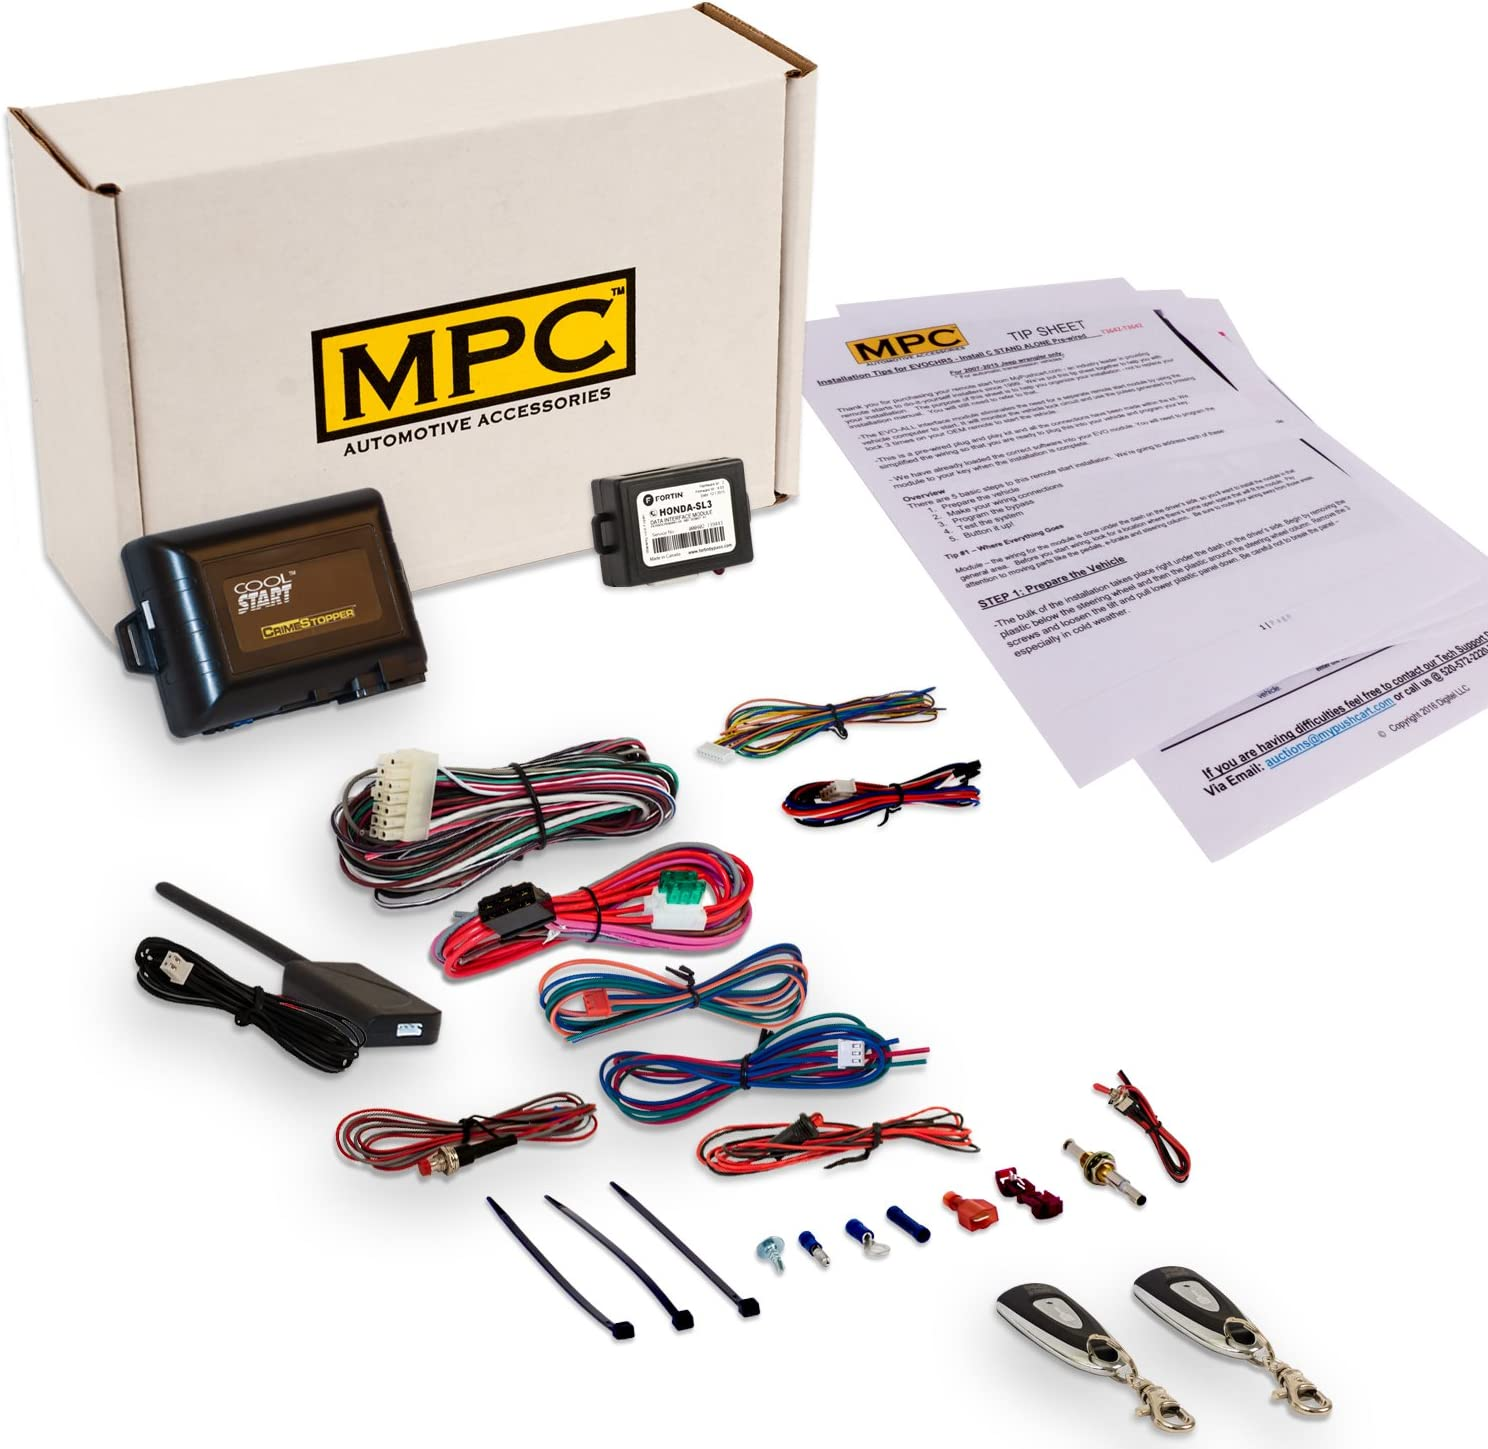 2 MPC Complete Up to 800 Range Key-to-Start Gas Includes USA Based Tech Support 1-Button Remote Starts with Keyless Entry Kit for 2003-2010 Honda Element 2 1-Button 1-Way Remotes